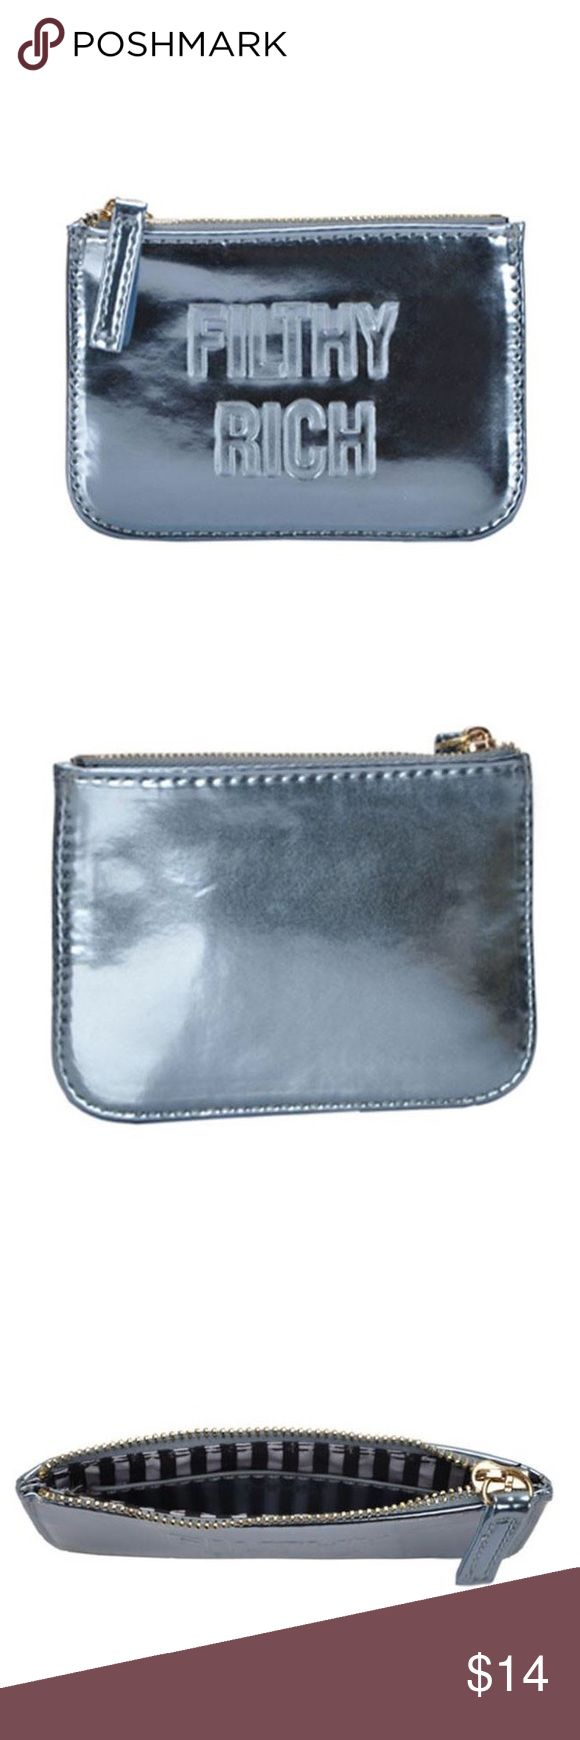 "Filthy Rich Metallic Coin Purse Stash your cash in this nifty little pouch for your next spending spree! Flat, rectangular wallet highlights a shiny metallic exterior that features ""Filthy Rich"" in stamped, capitalized typeface. Zip-top opening reveals a lined interior with an open sidewall pocket.  Length: 3.5"", Width: 5.25"", Depth: 0.5"" Man made materials MMS Design Studio Accessories"